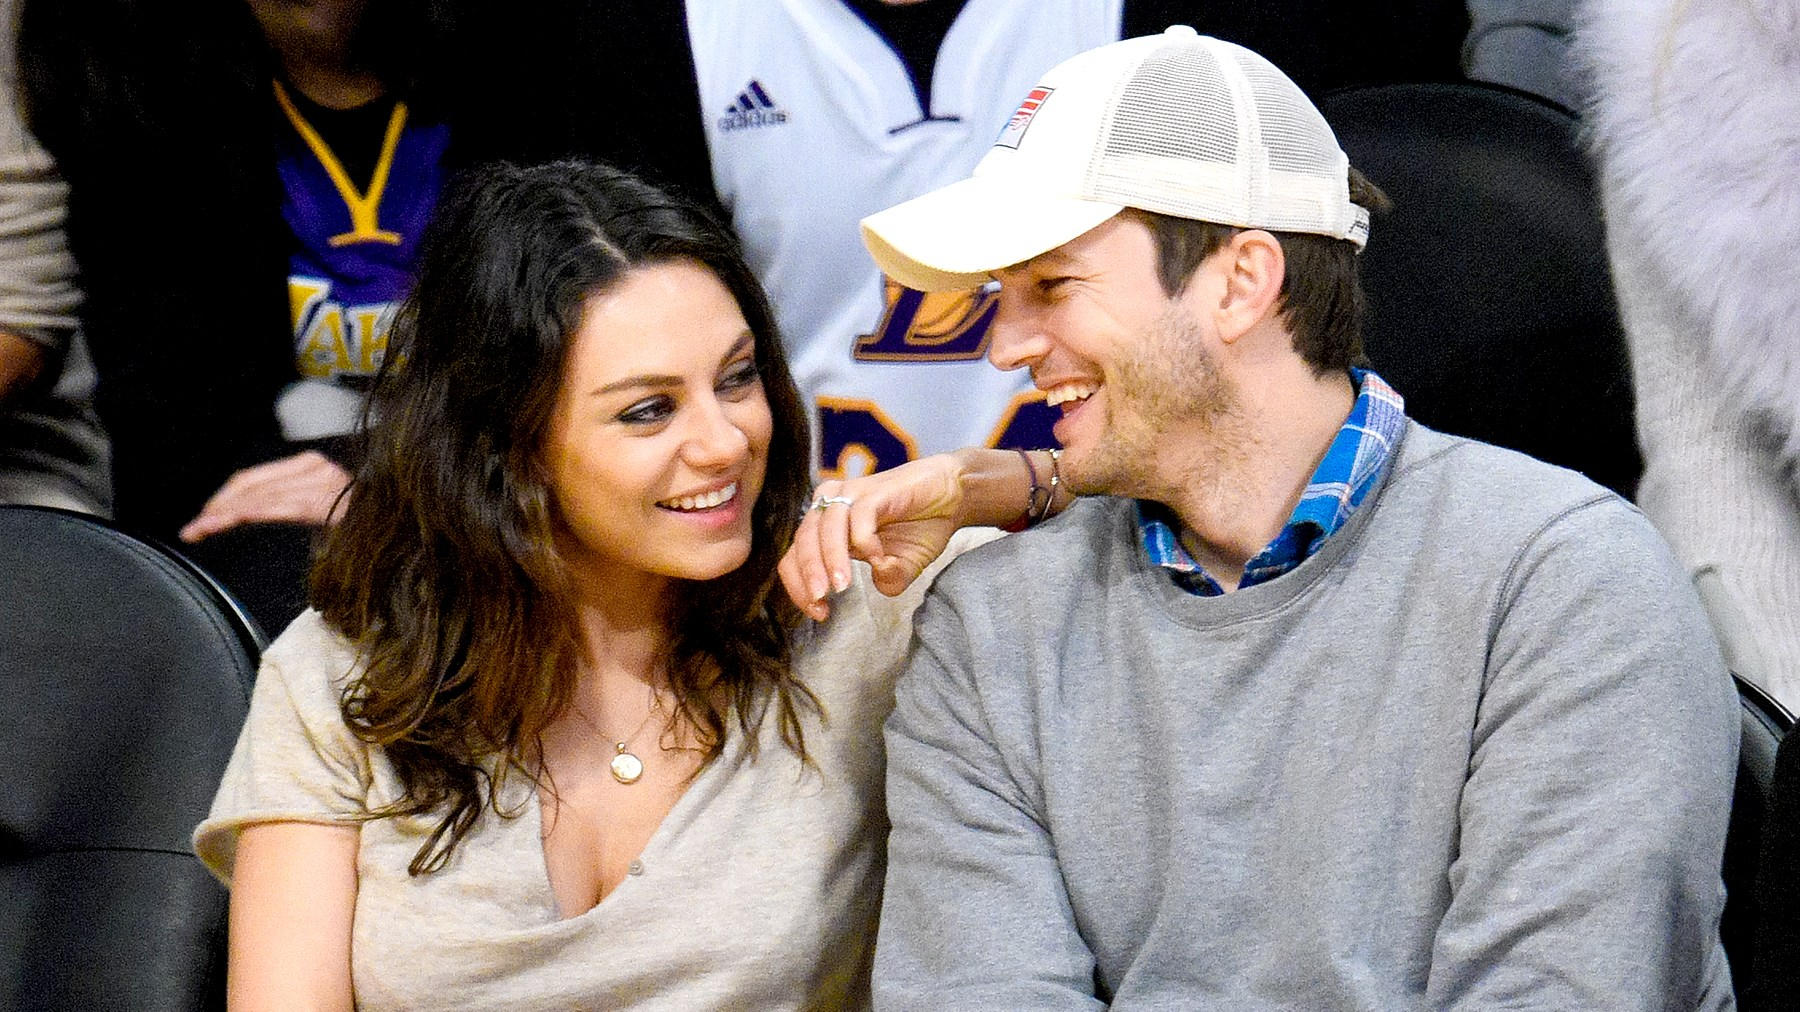 Mila Kunis and Ashton Kutcher attend a basketball game between the Oklahoma City Thunder and the Los Angeles Lakers at Staples Center in Los Angeles on December 19, 2014.